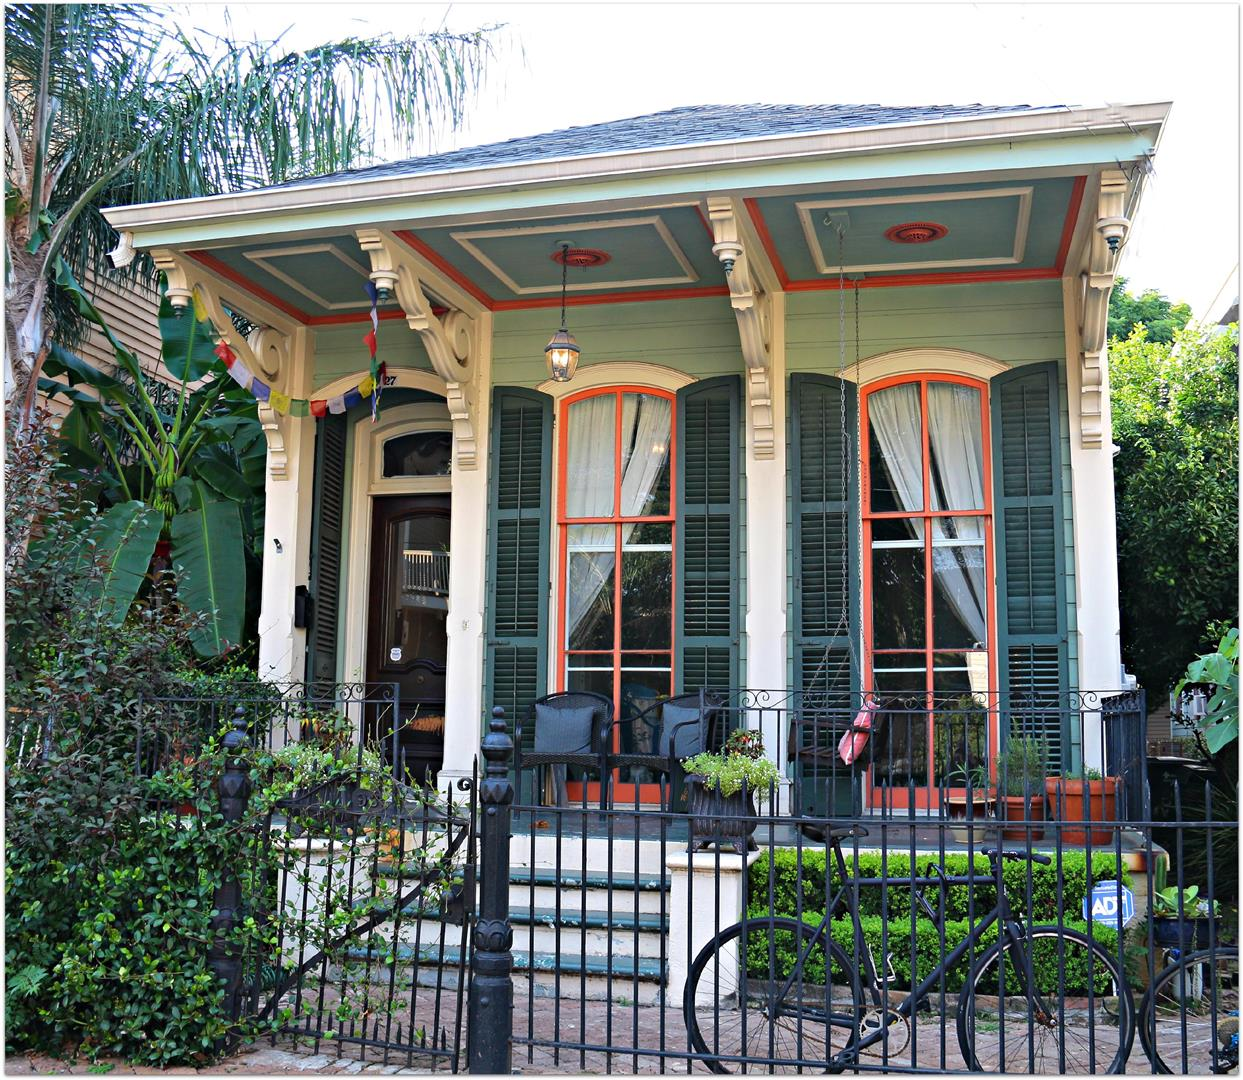 Apartments In New Orleans East: Uptown, Lower Garden District, Garden District And The